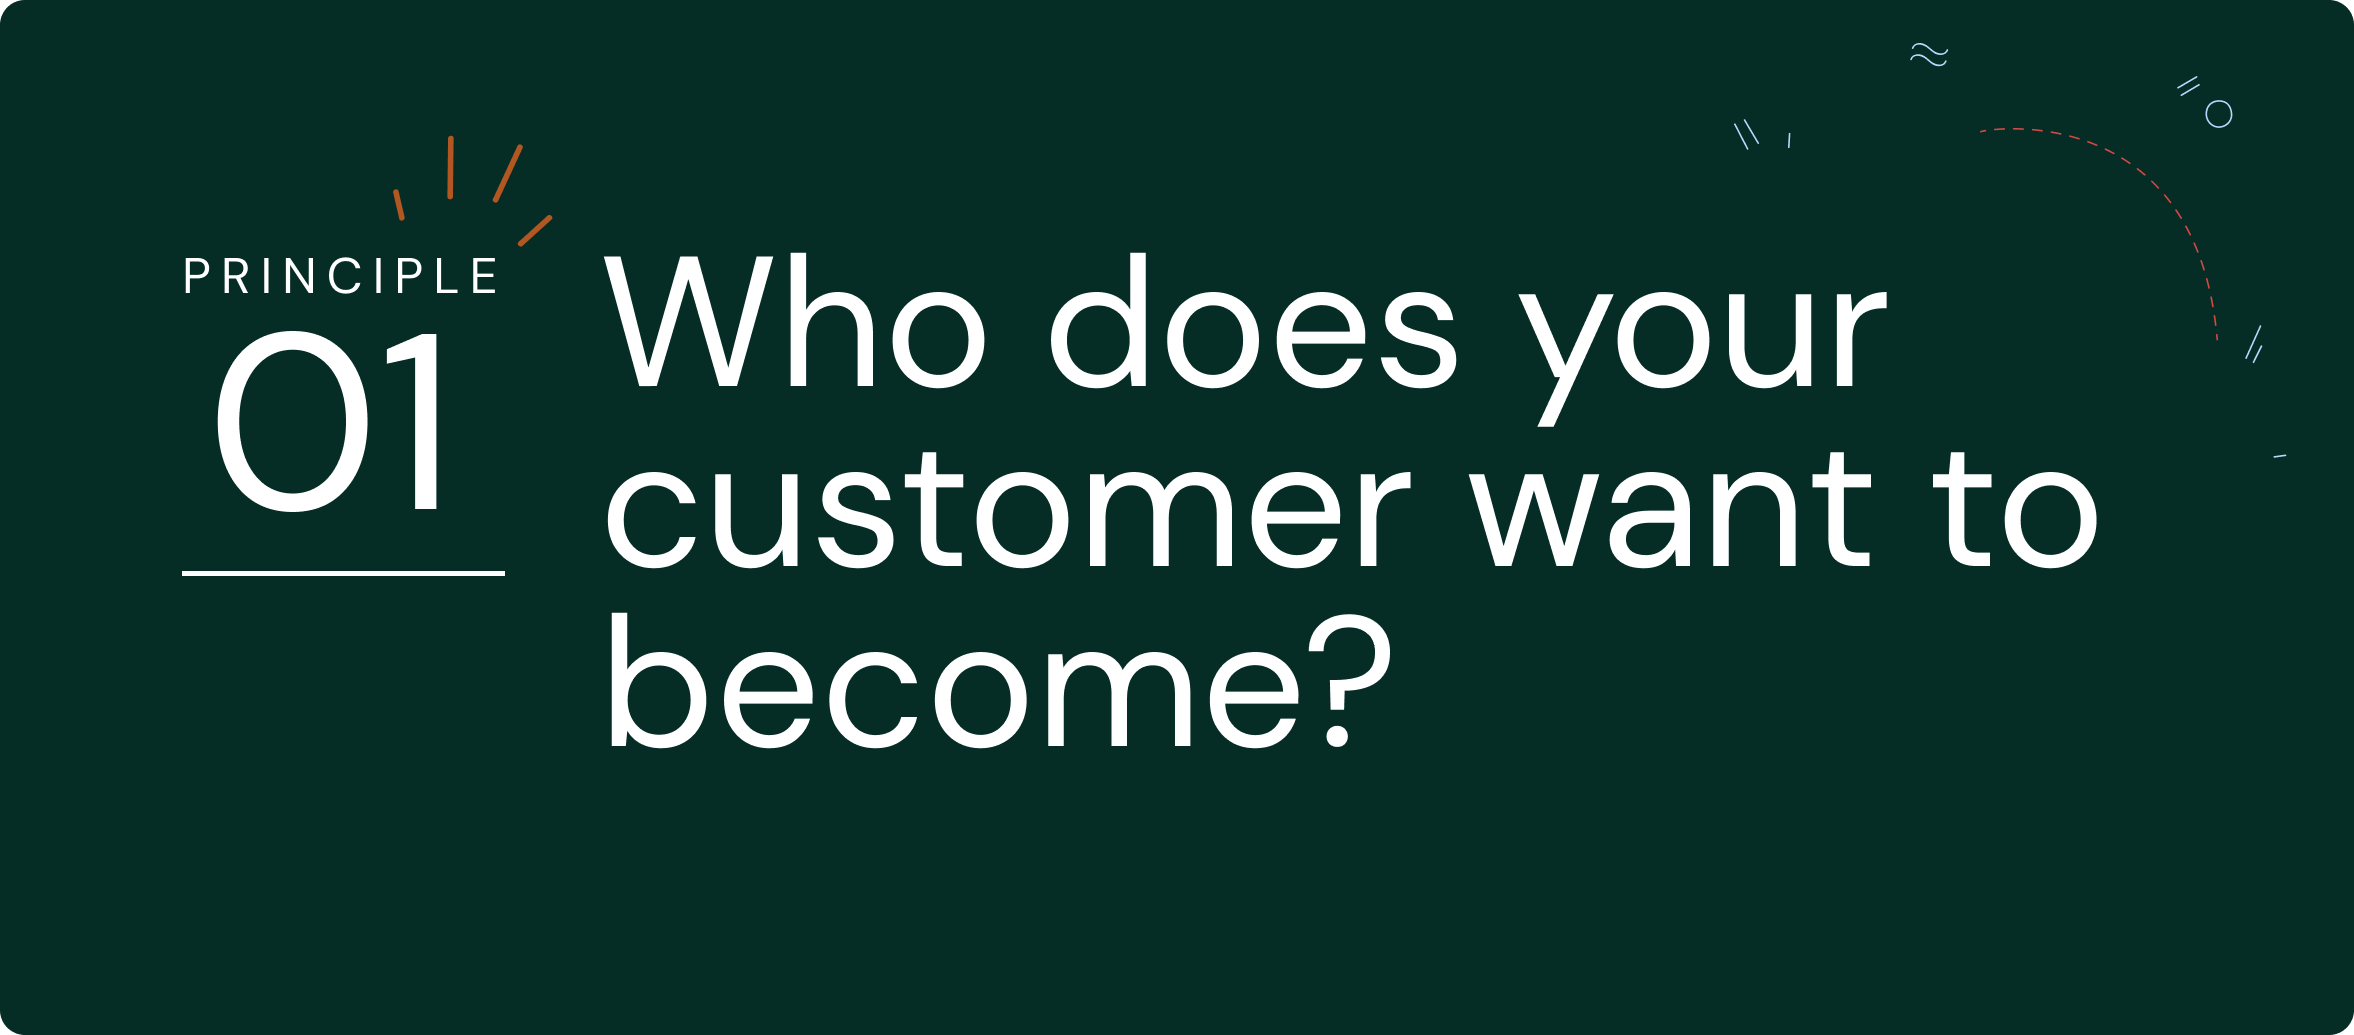 Principle #1 - who does your customer want to become?